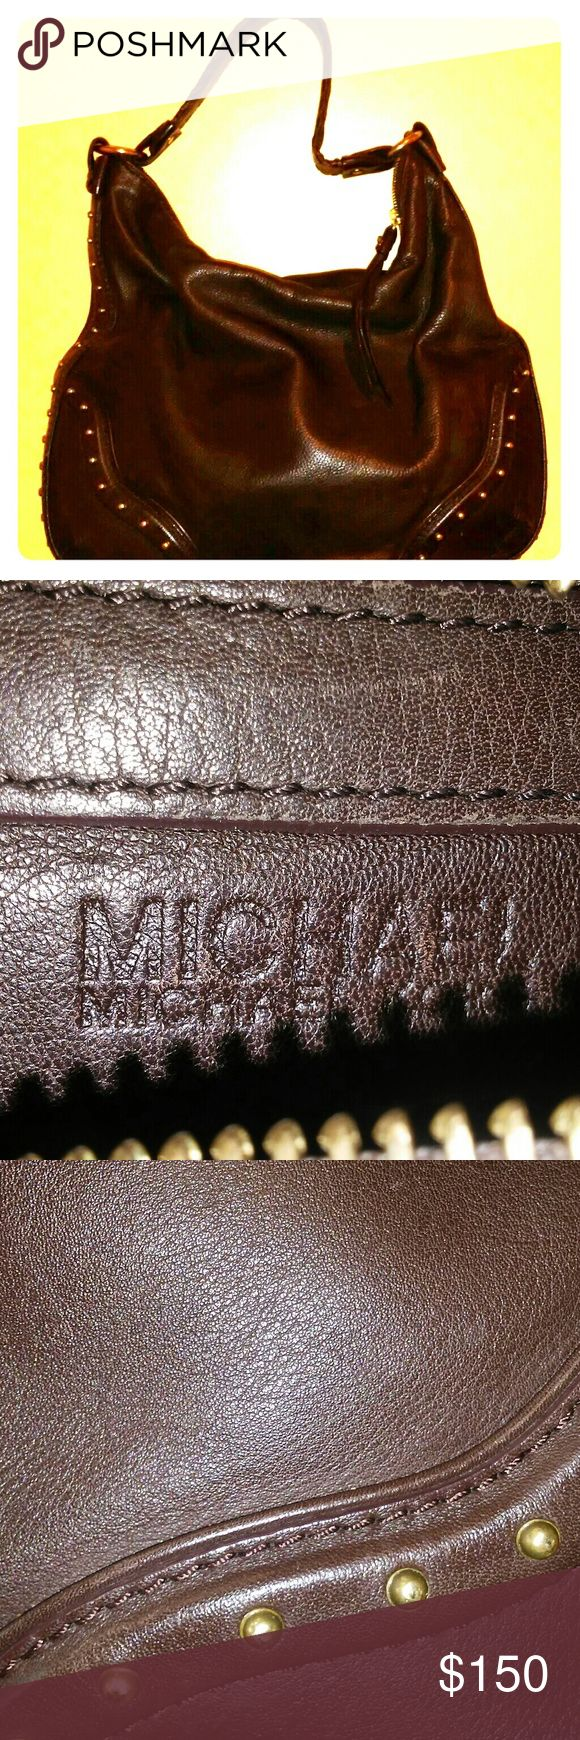 Michael Kors Pebble Leather Handbag Michael Kors Pebble Leather Handbag Michael Kors Bags